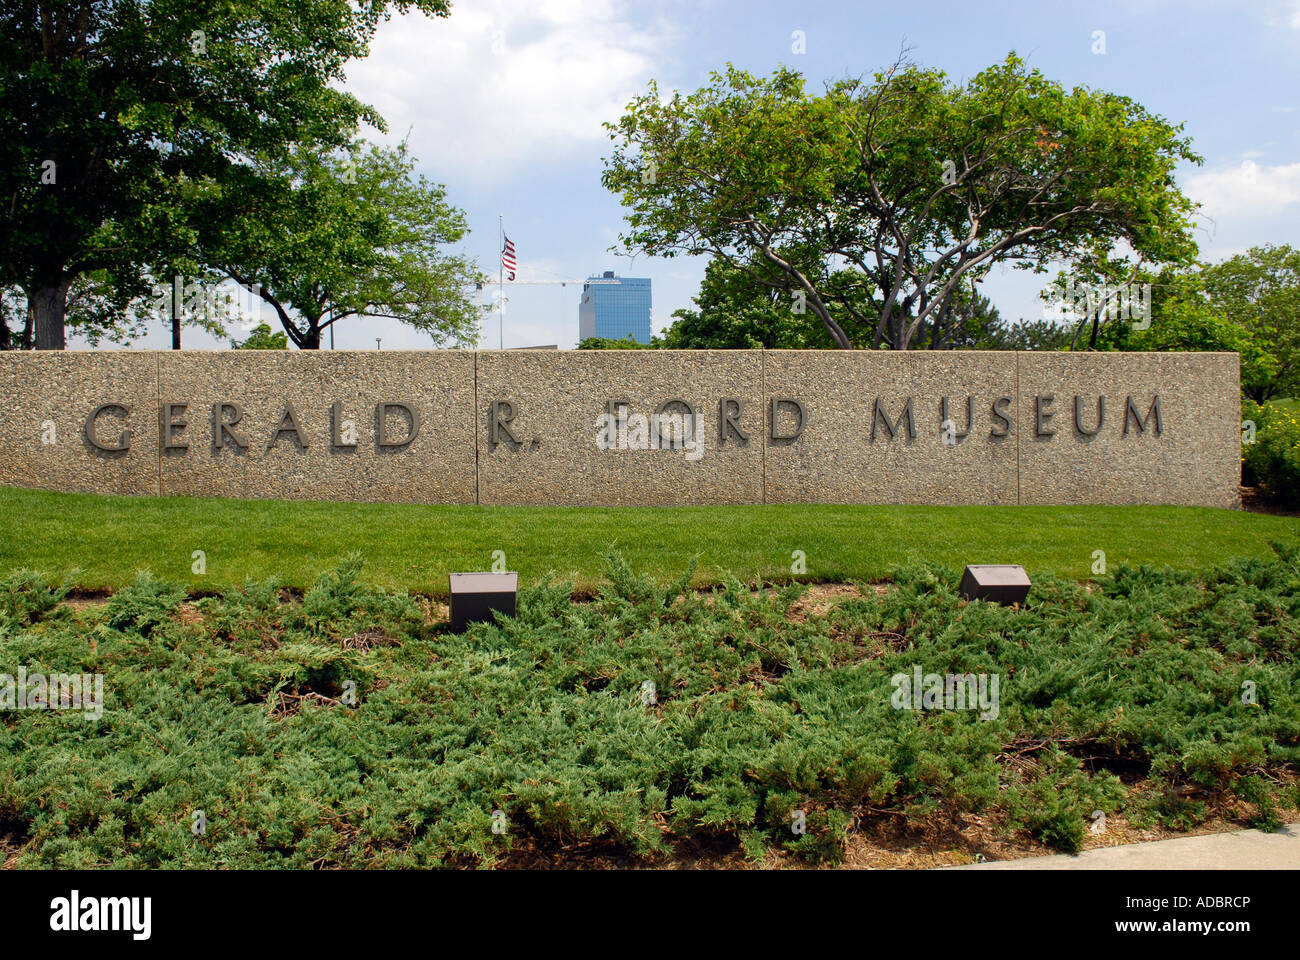 Gerald Ford Museum Stock Photos Amp Gerald Ford Museum Stock